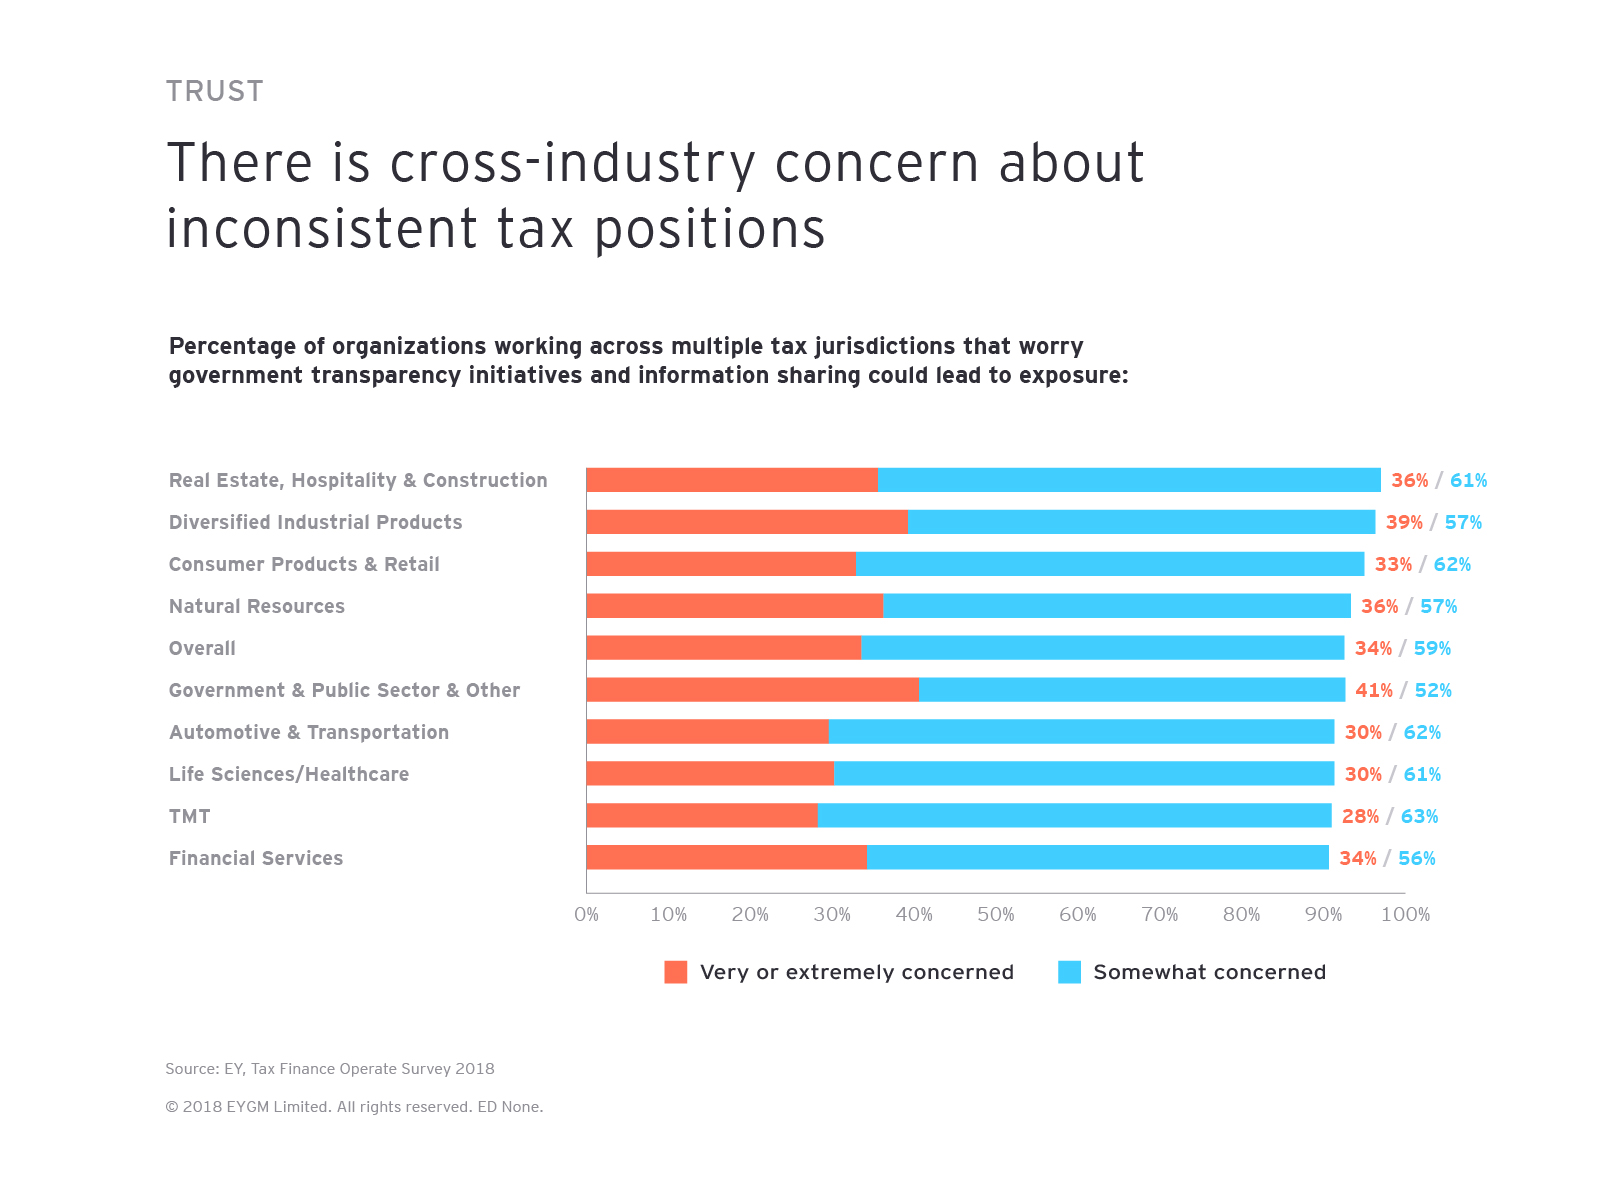 There is cross-industry concern about inconsistent tax positions